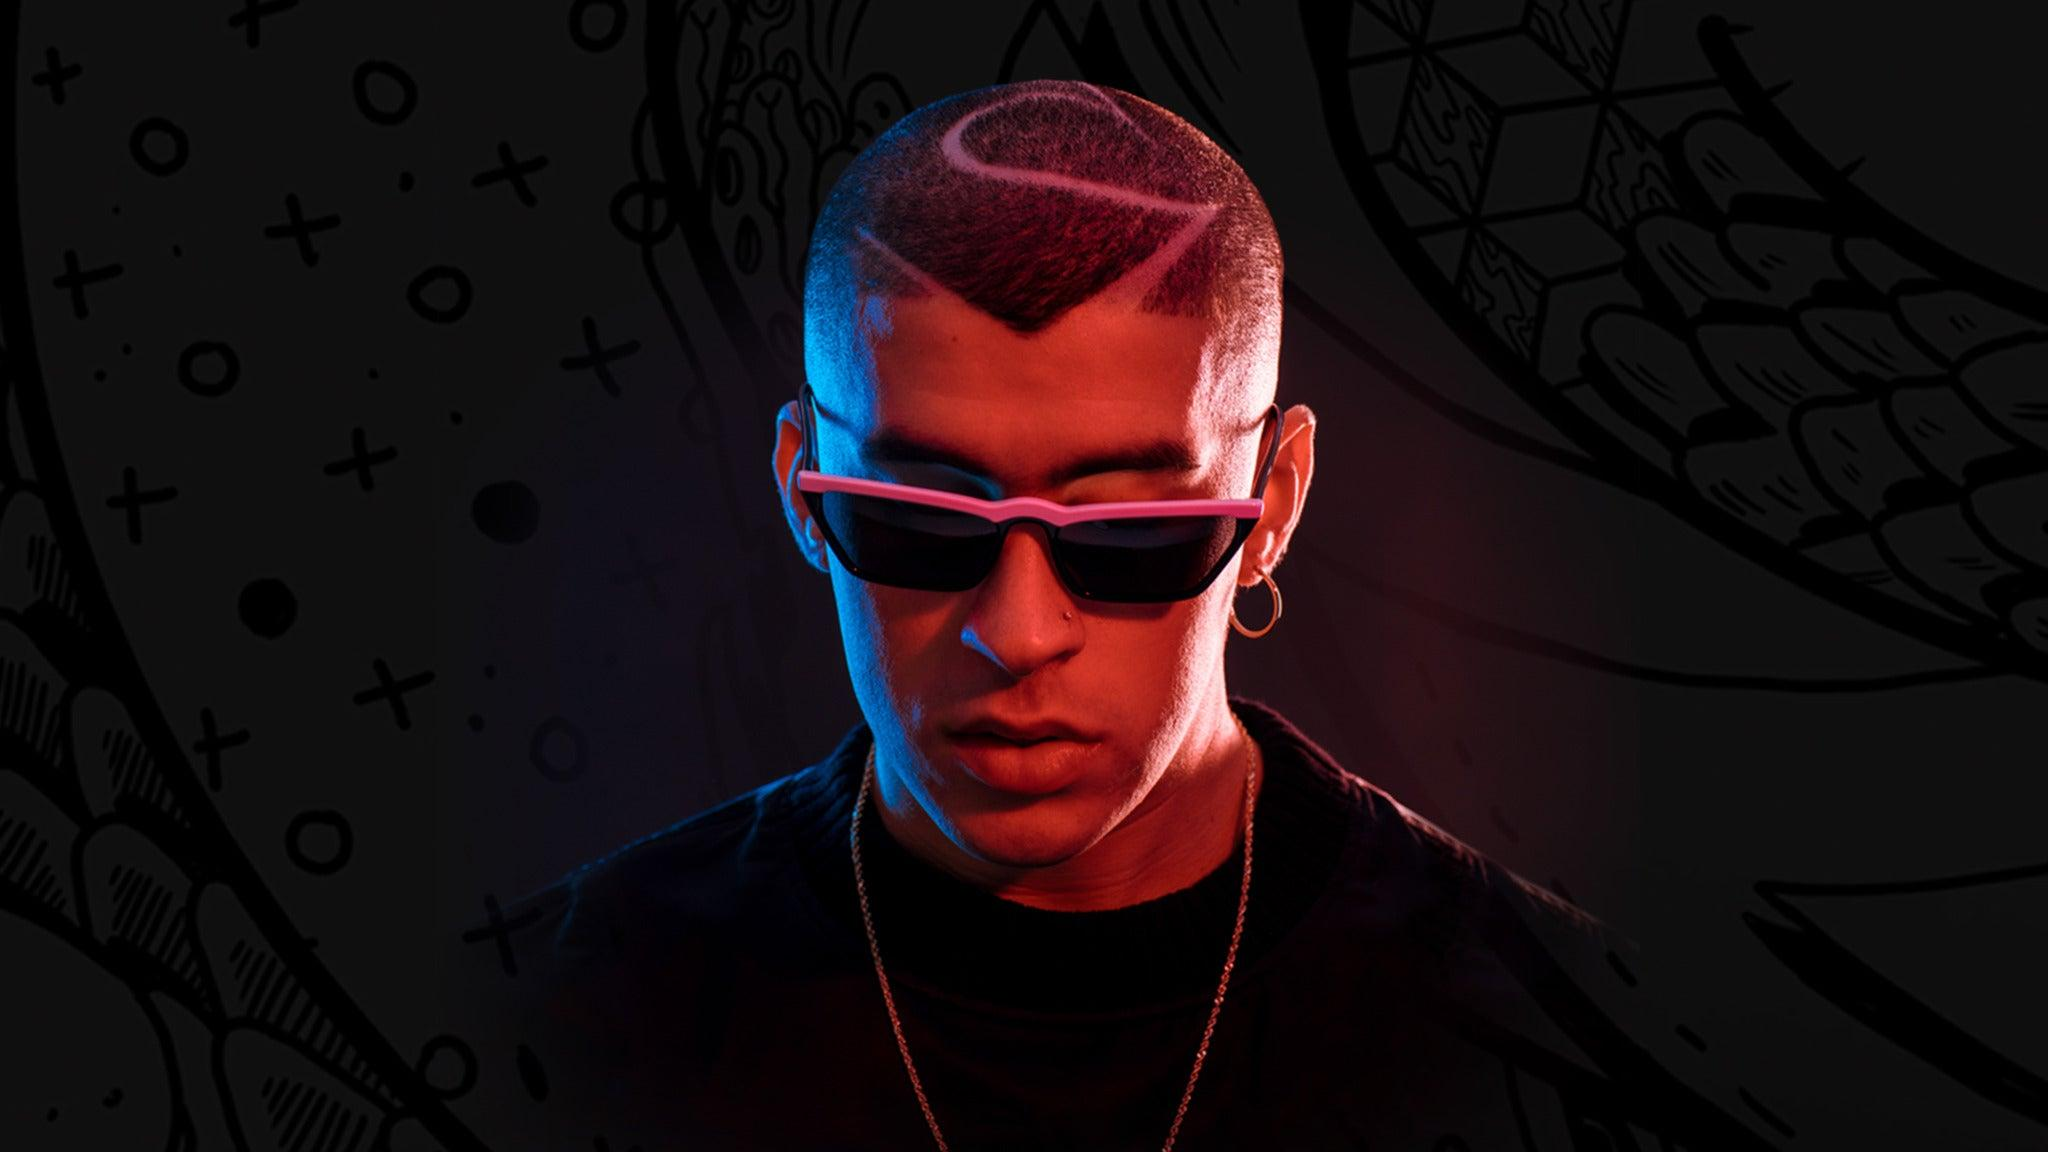 Anuel Aa And Bad Bunny Wallpapers Wallpaper Cave